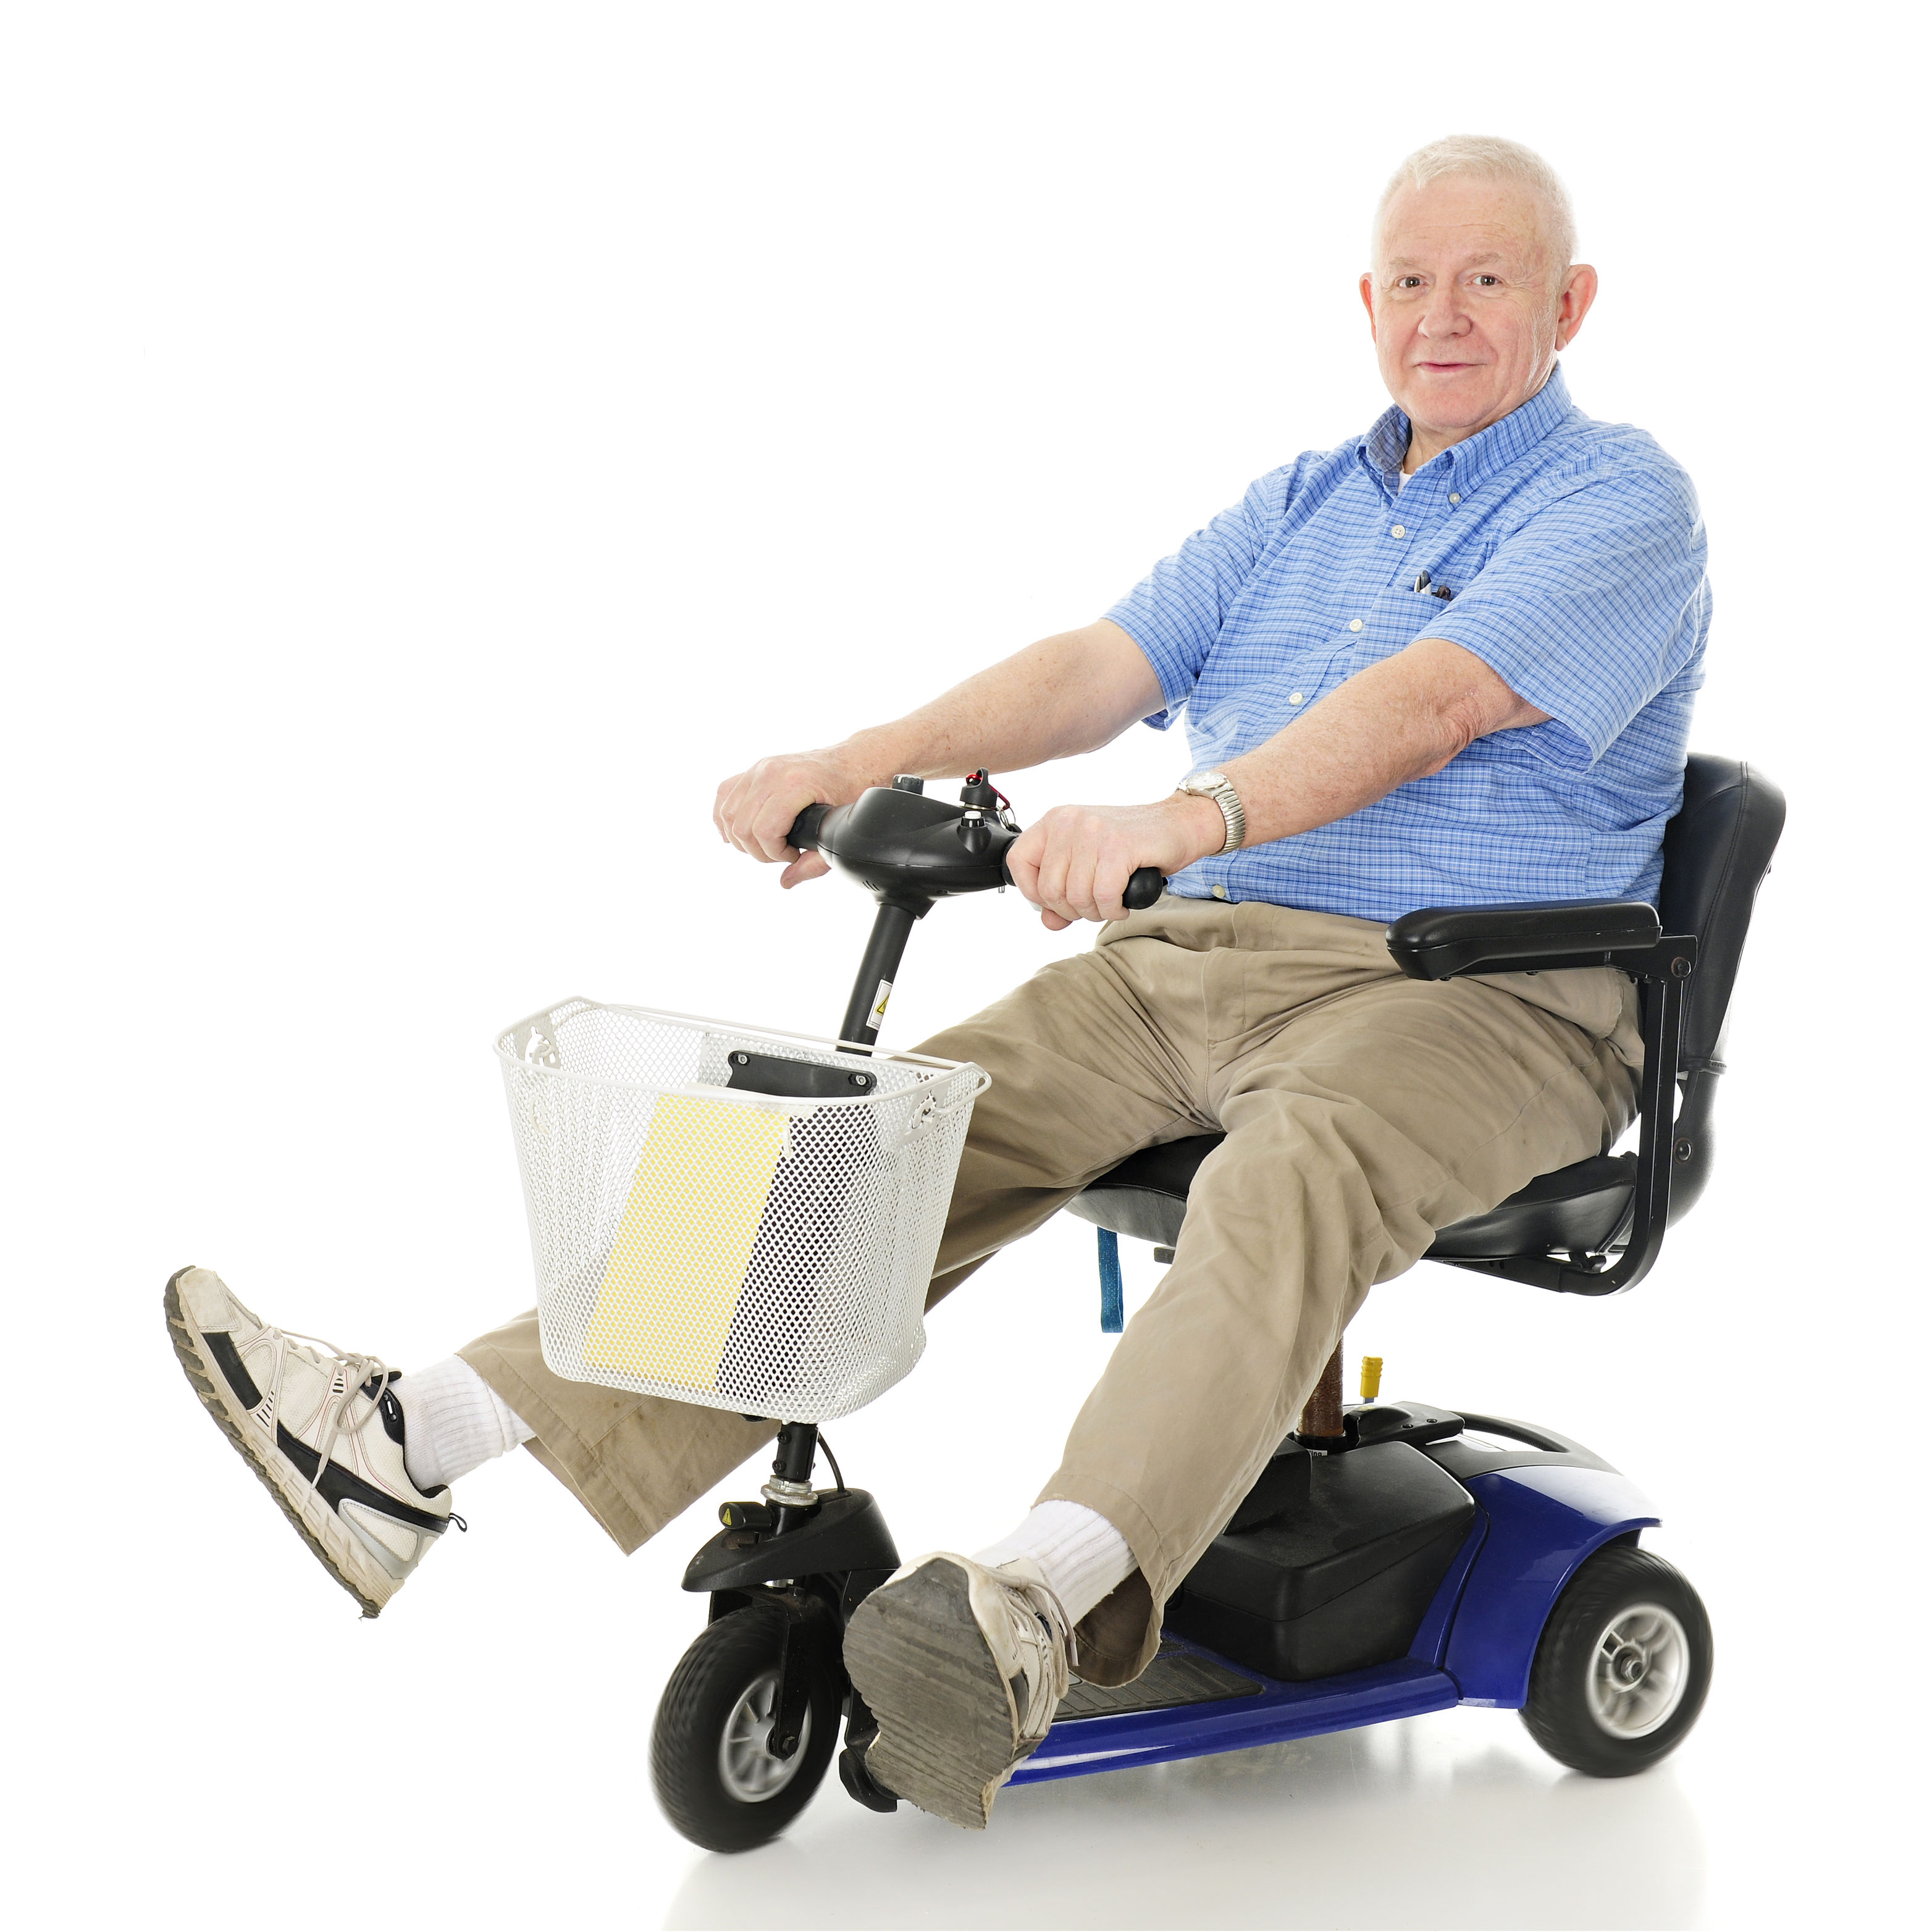 How To Purchase A Used Electric Wheelchair In Ireland